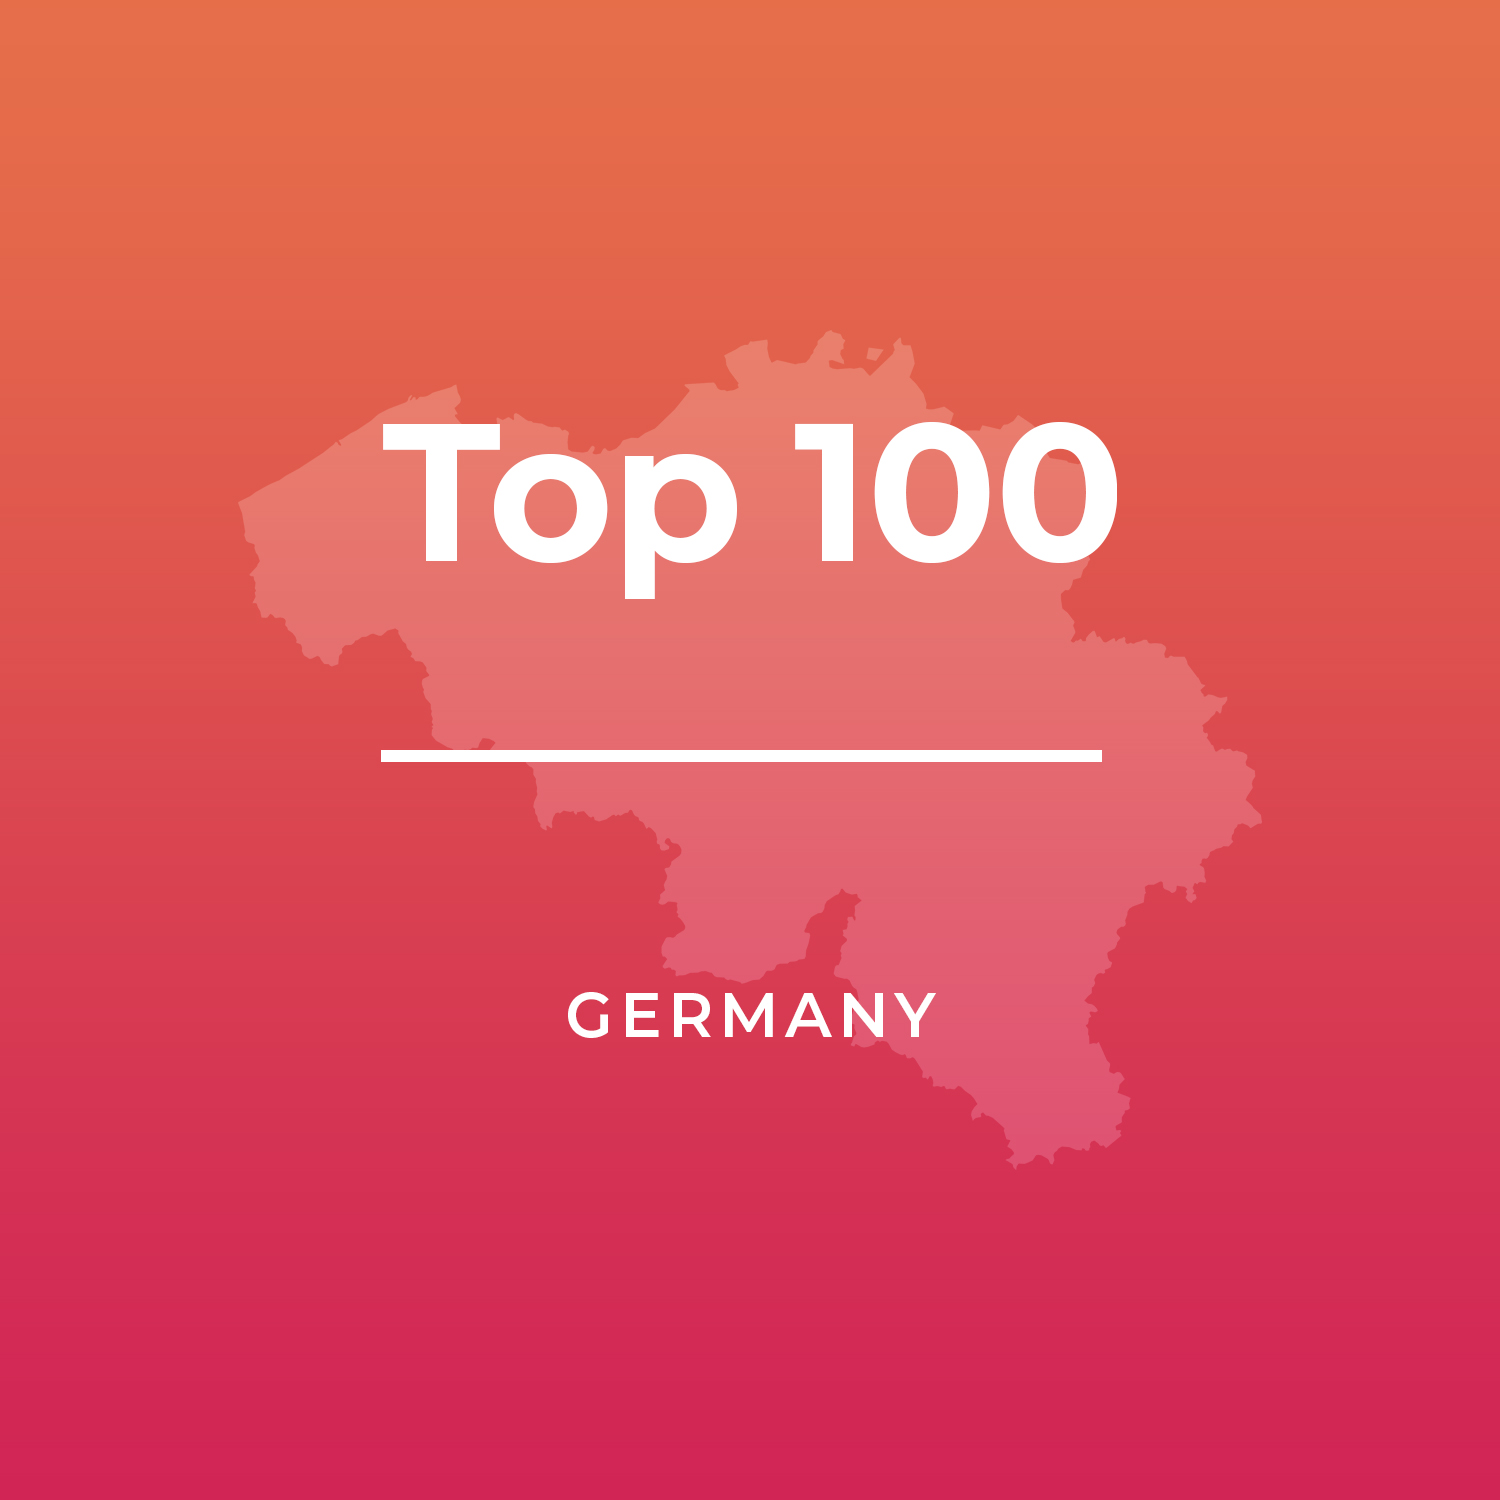 Top 100 Germany Download